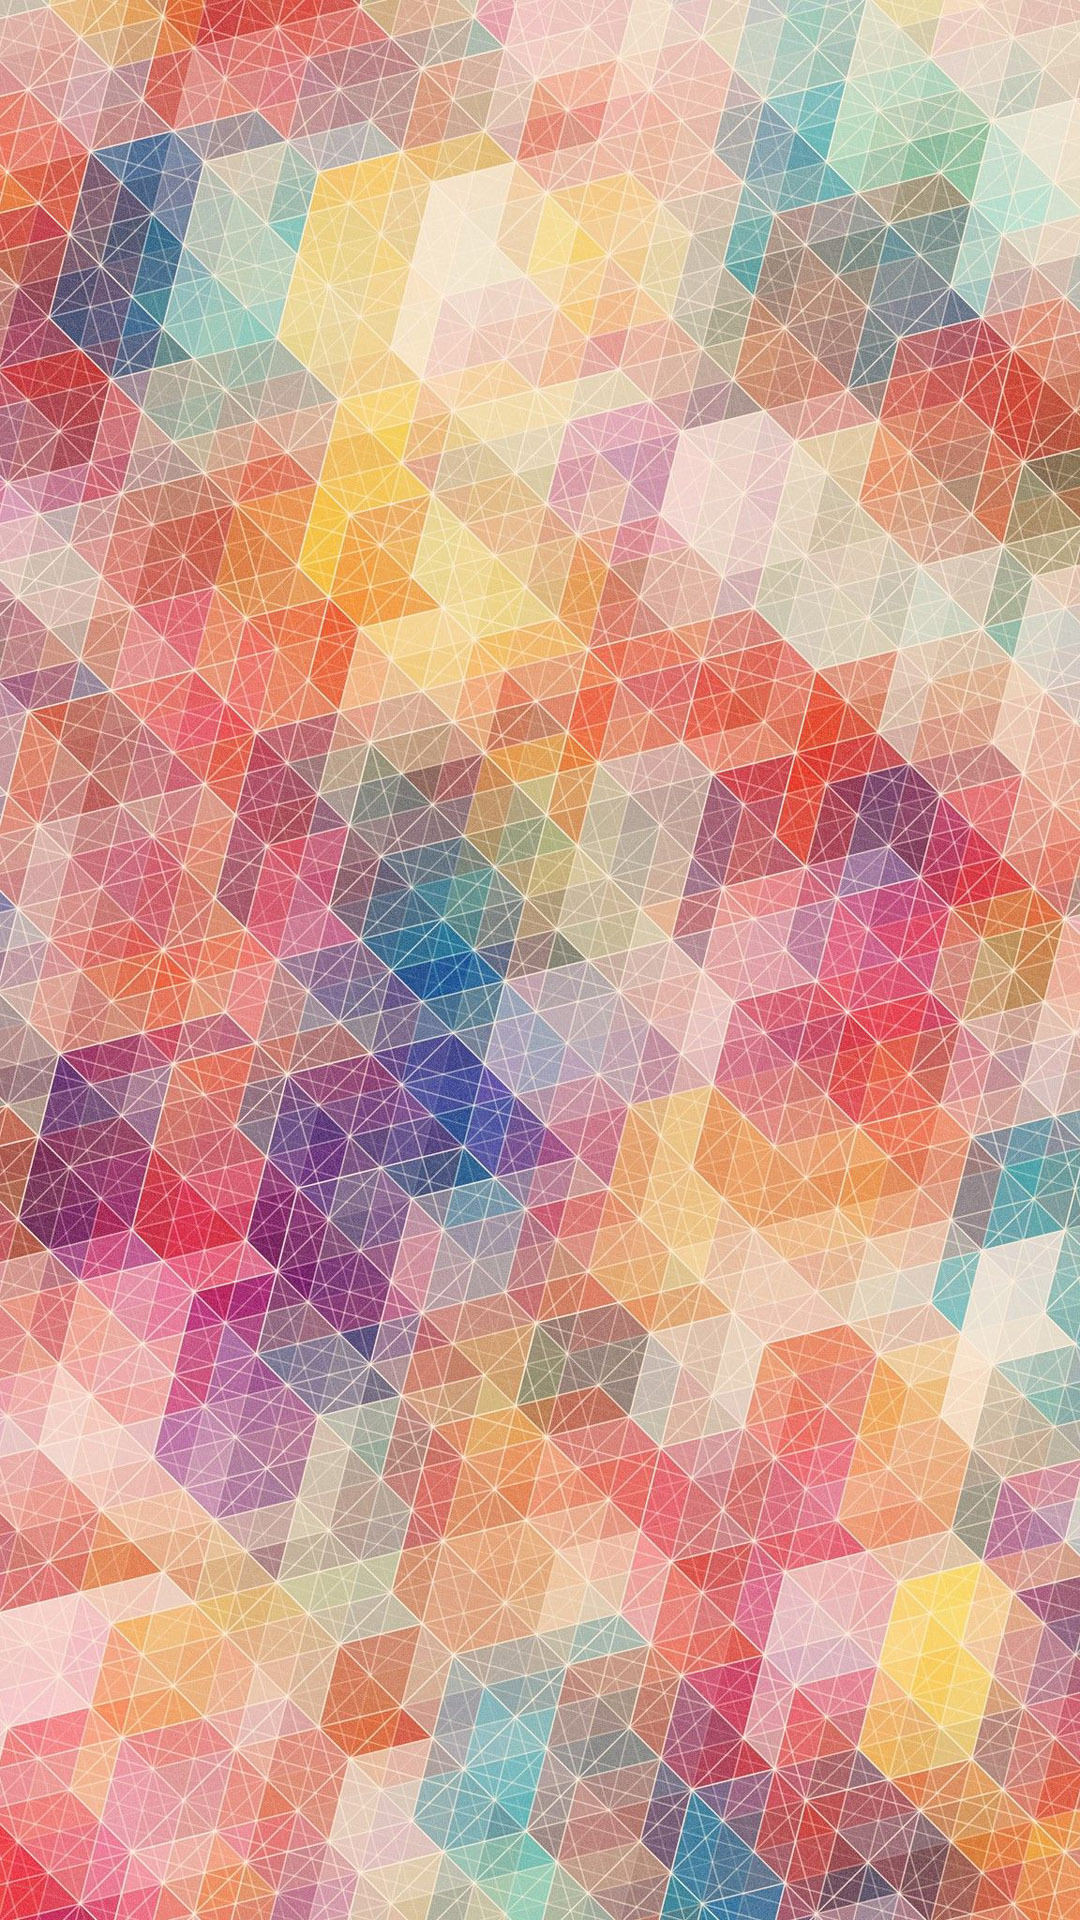 Pastel Geometry Smartphone Wallpaper